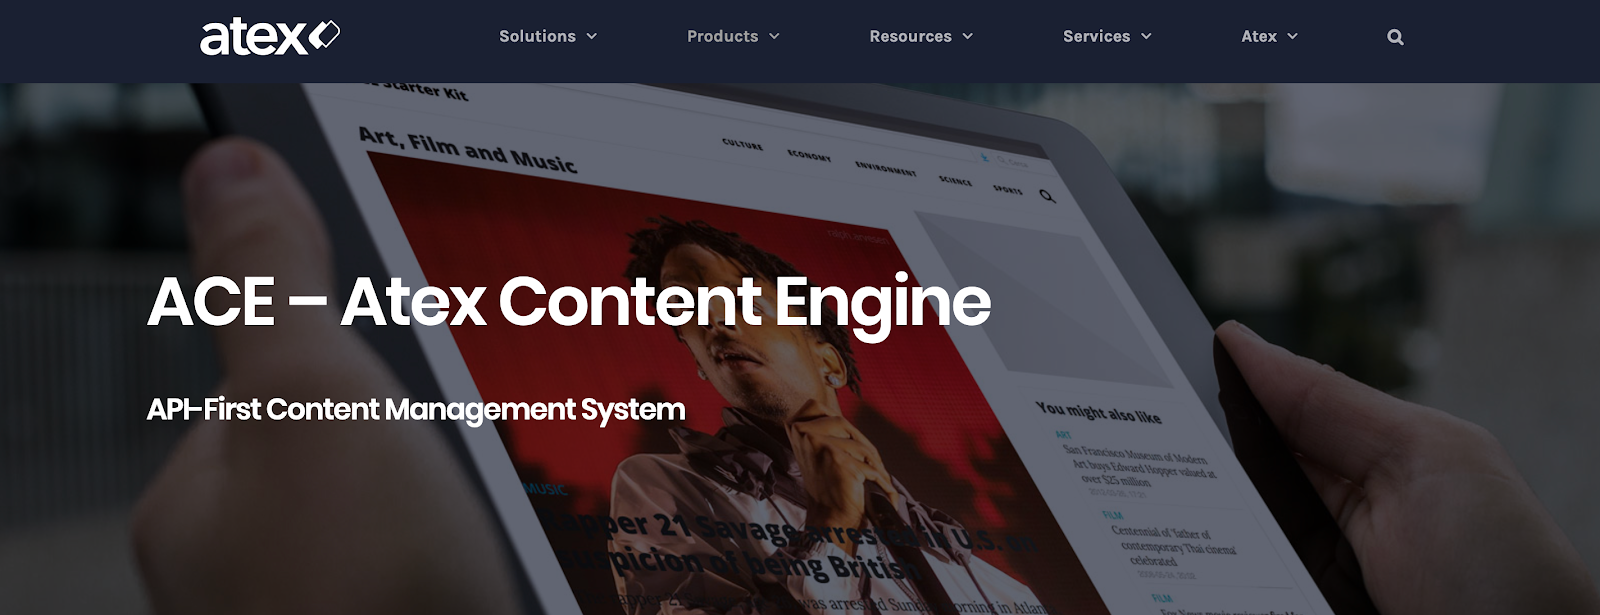 ACE stands for the Atex Content Engine and is fully scalable for developers and content teams